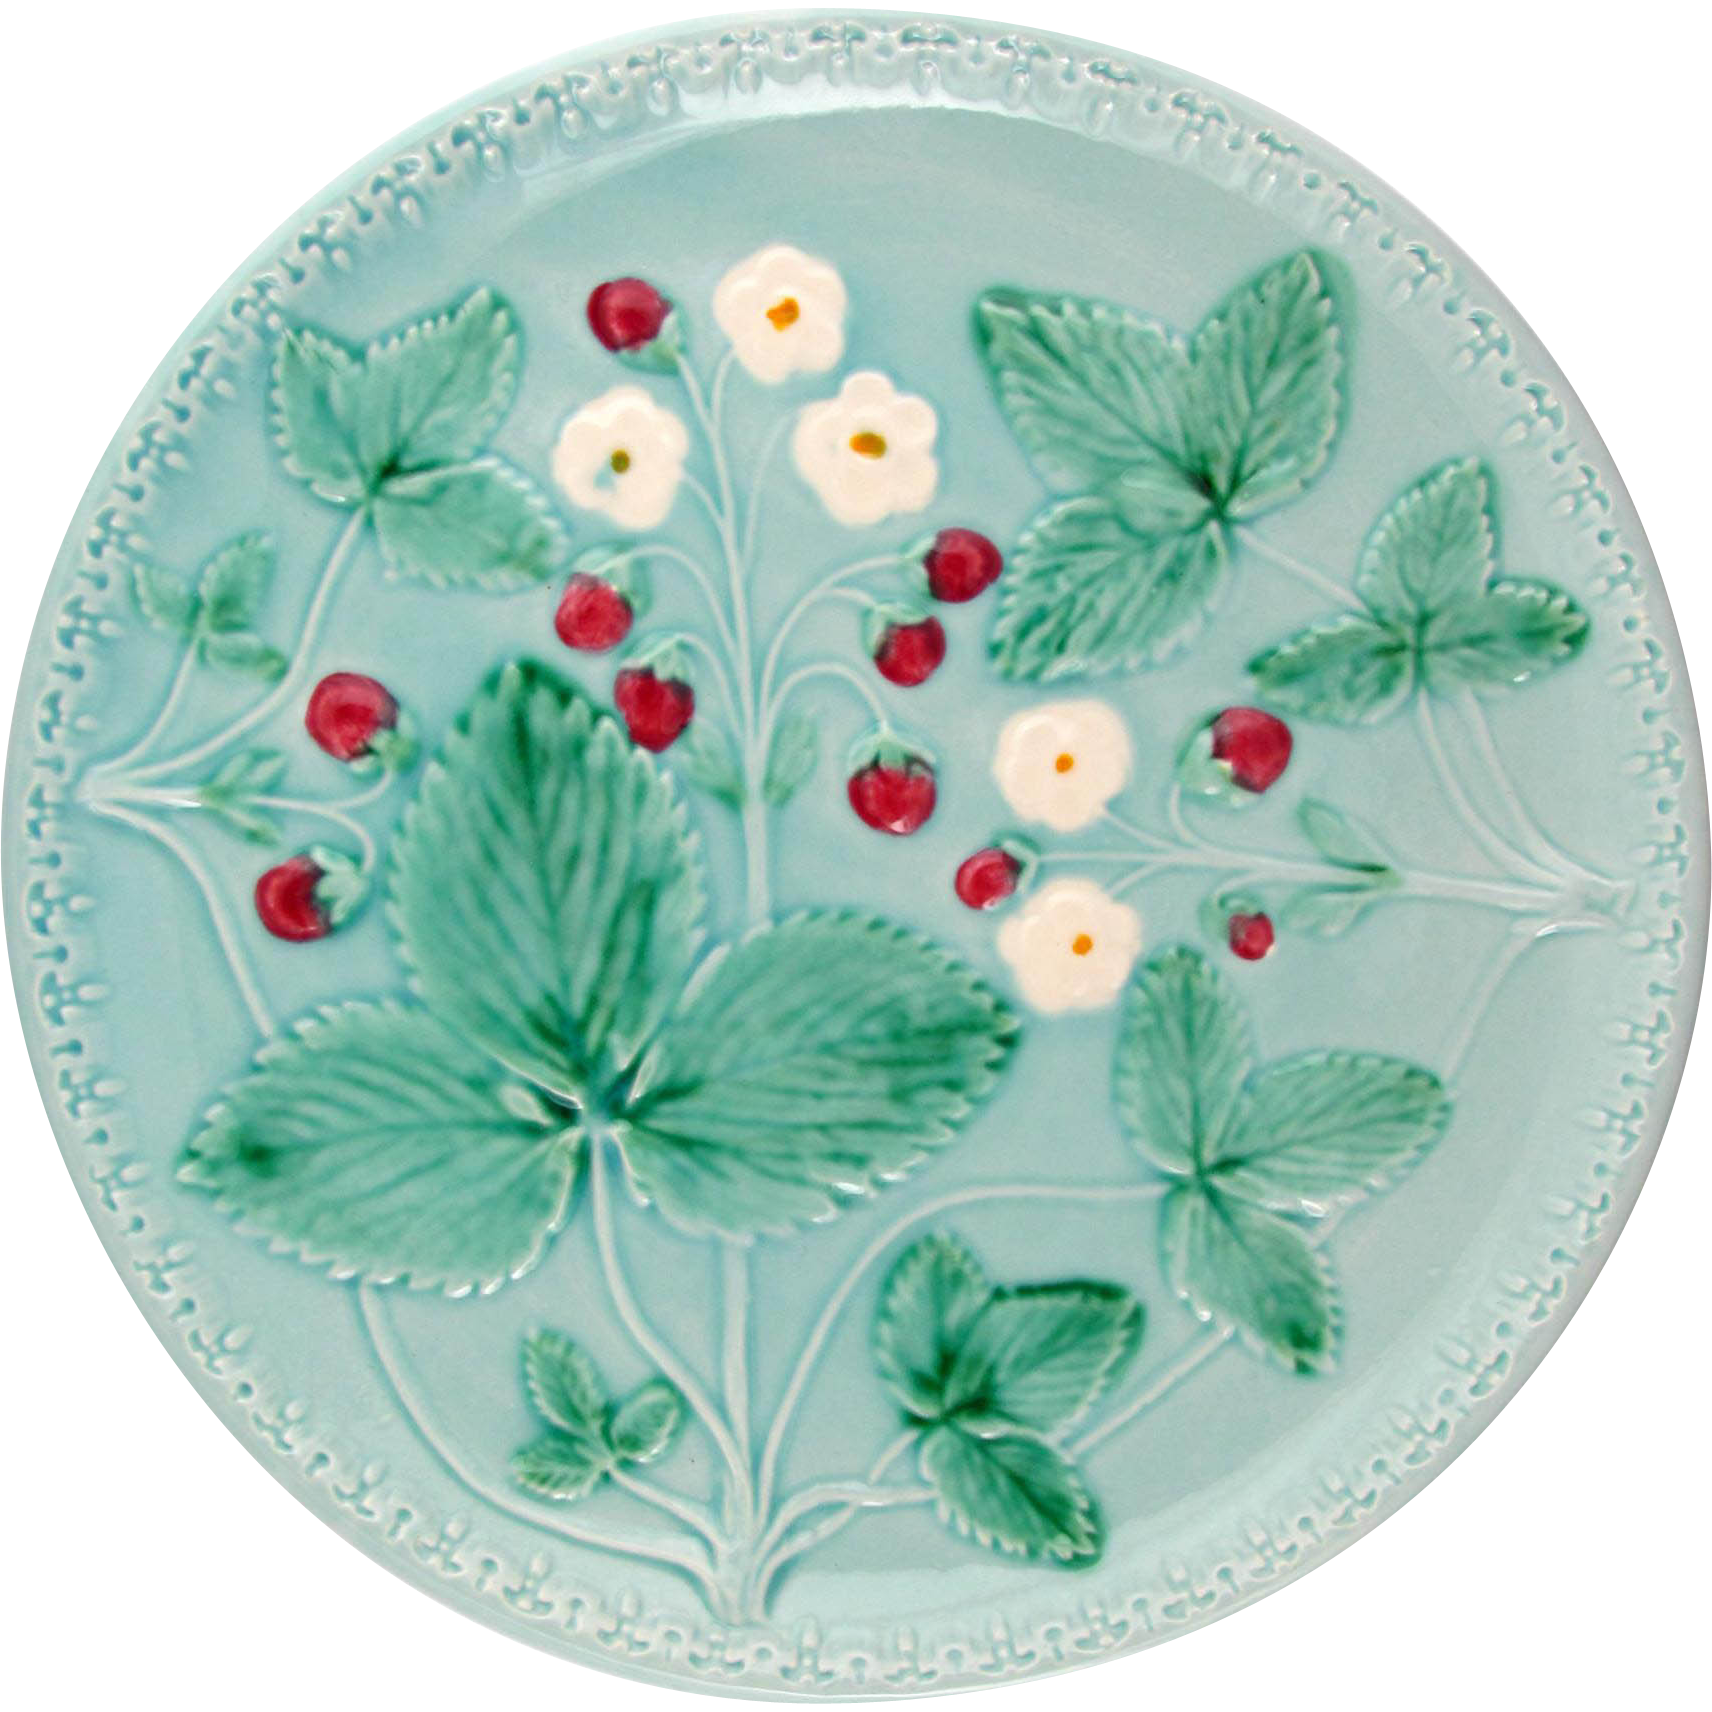 Charming Vintage W. Germany Majolica Plate, Floral & Strawberry Motif on Blue